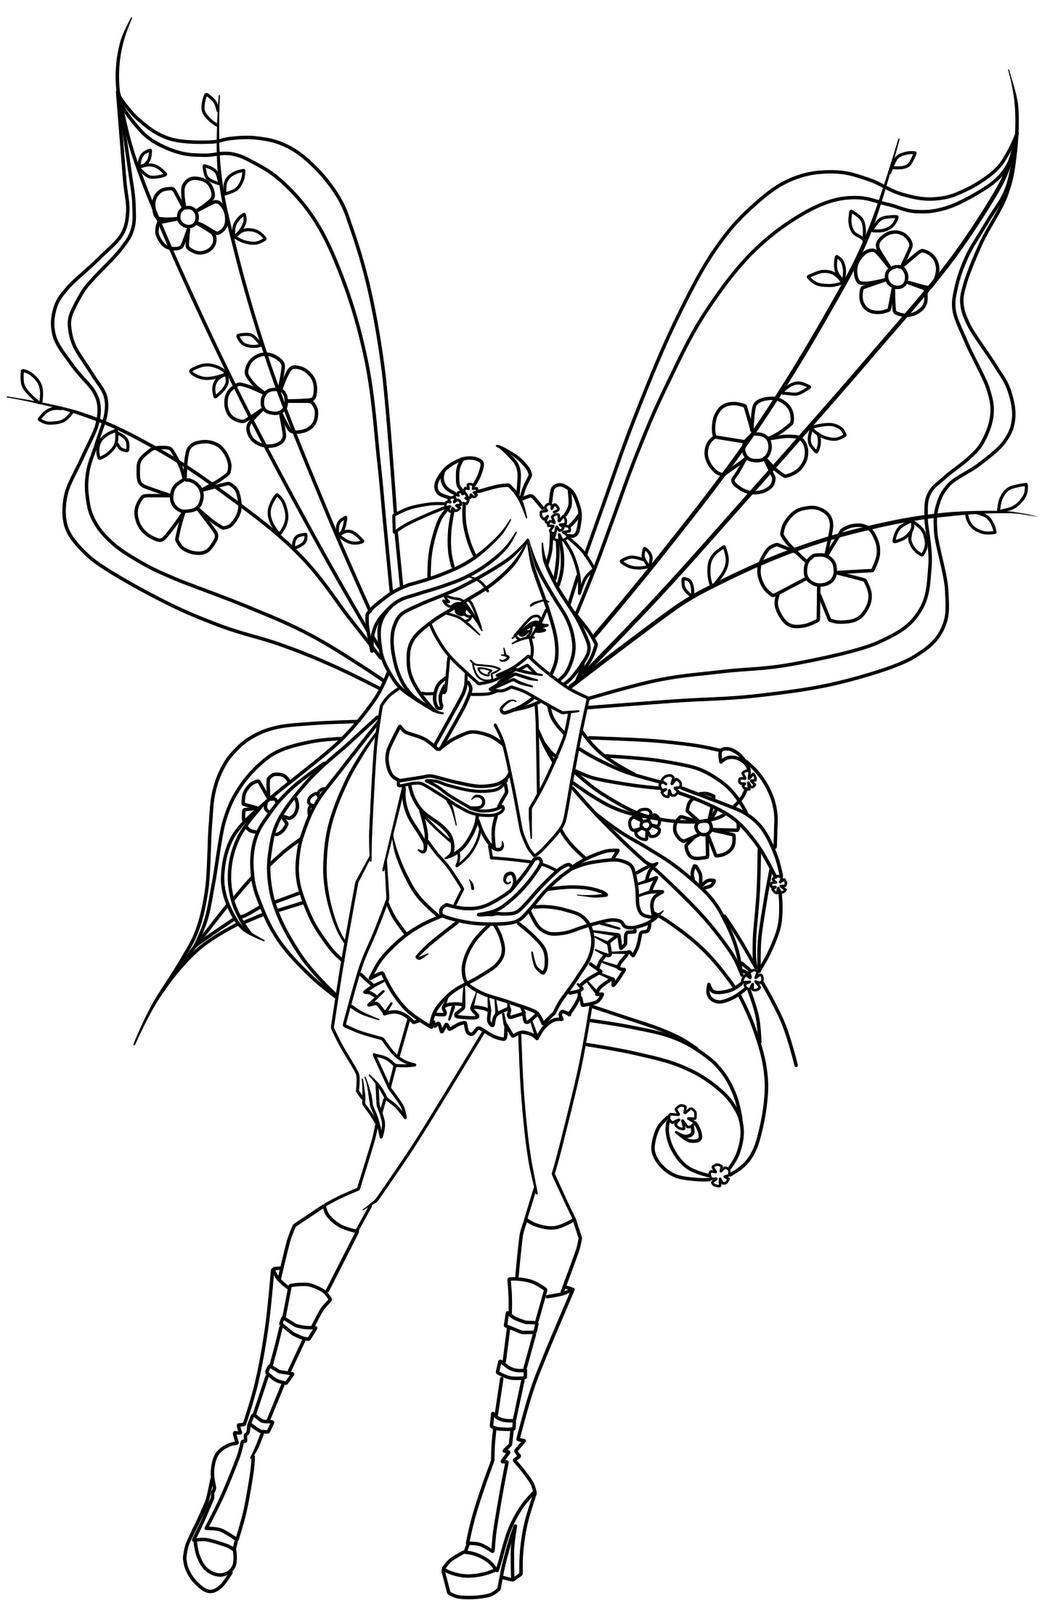 winx club colouring pages believix musa winx coloring pages download and print for free winx believix club colouring pages